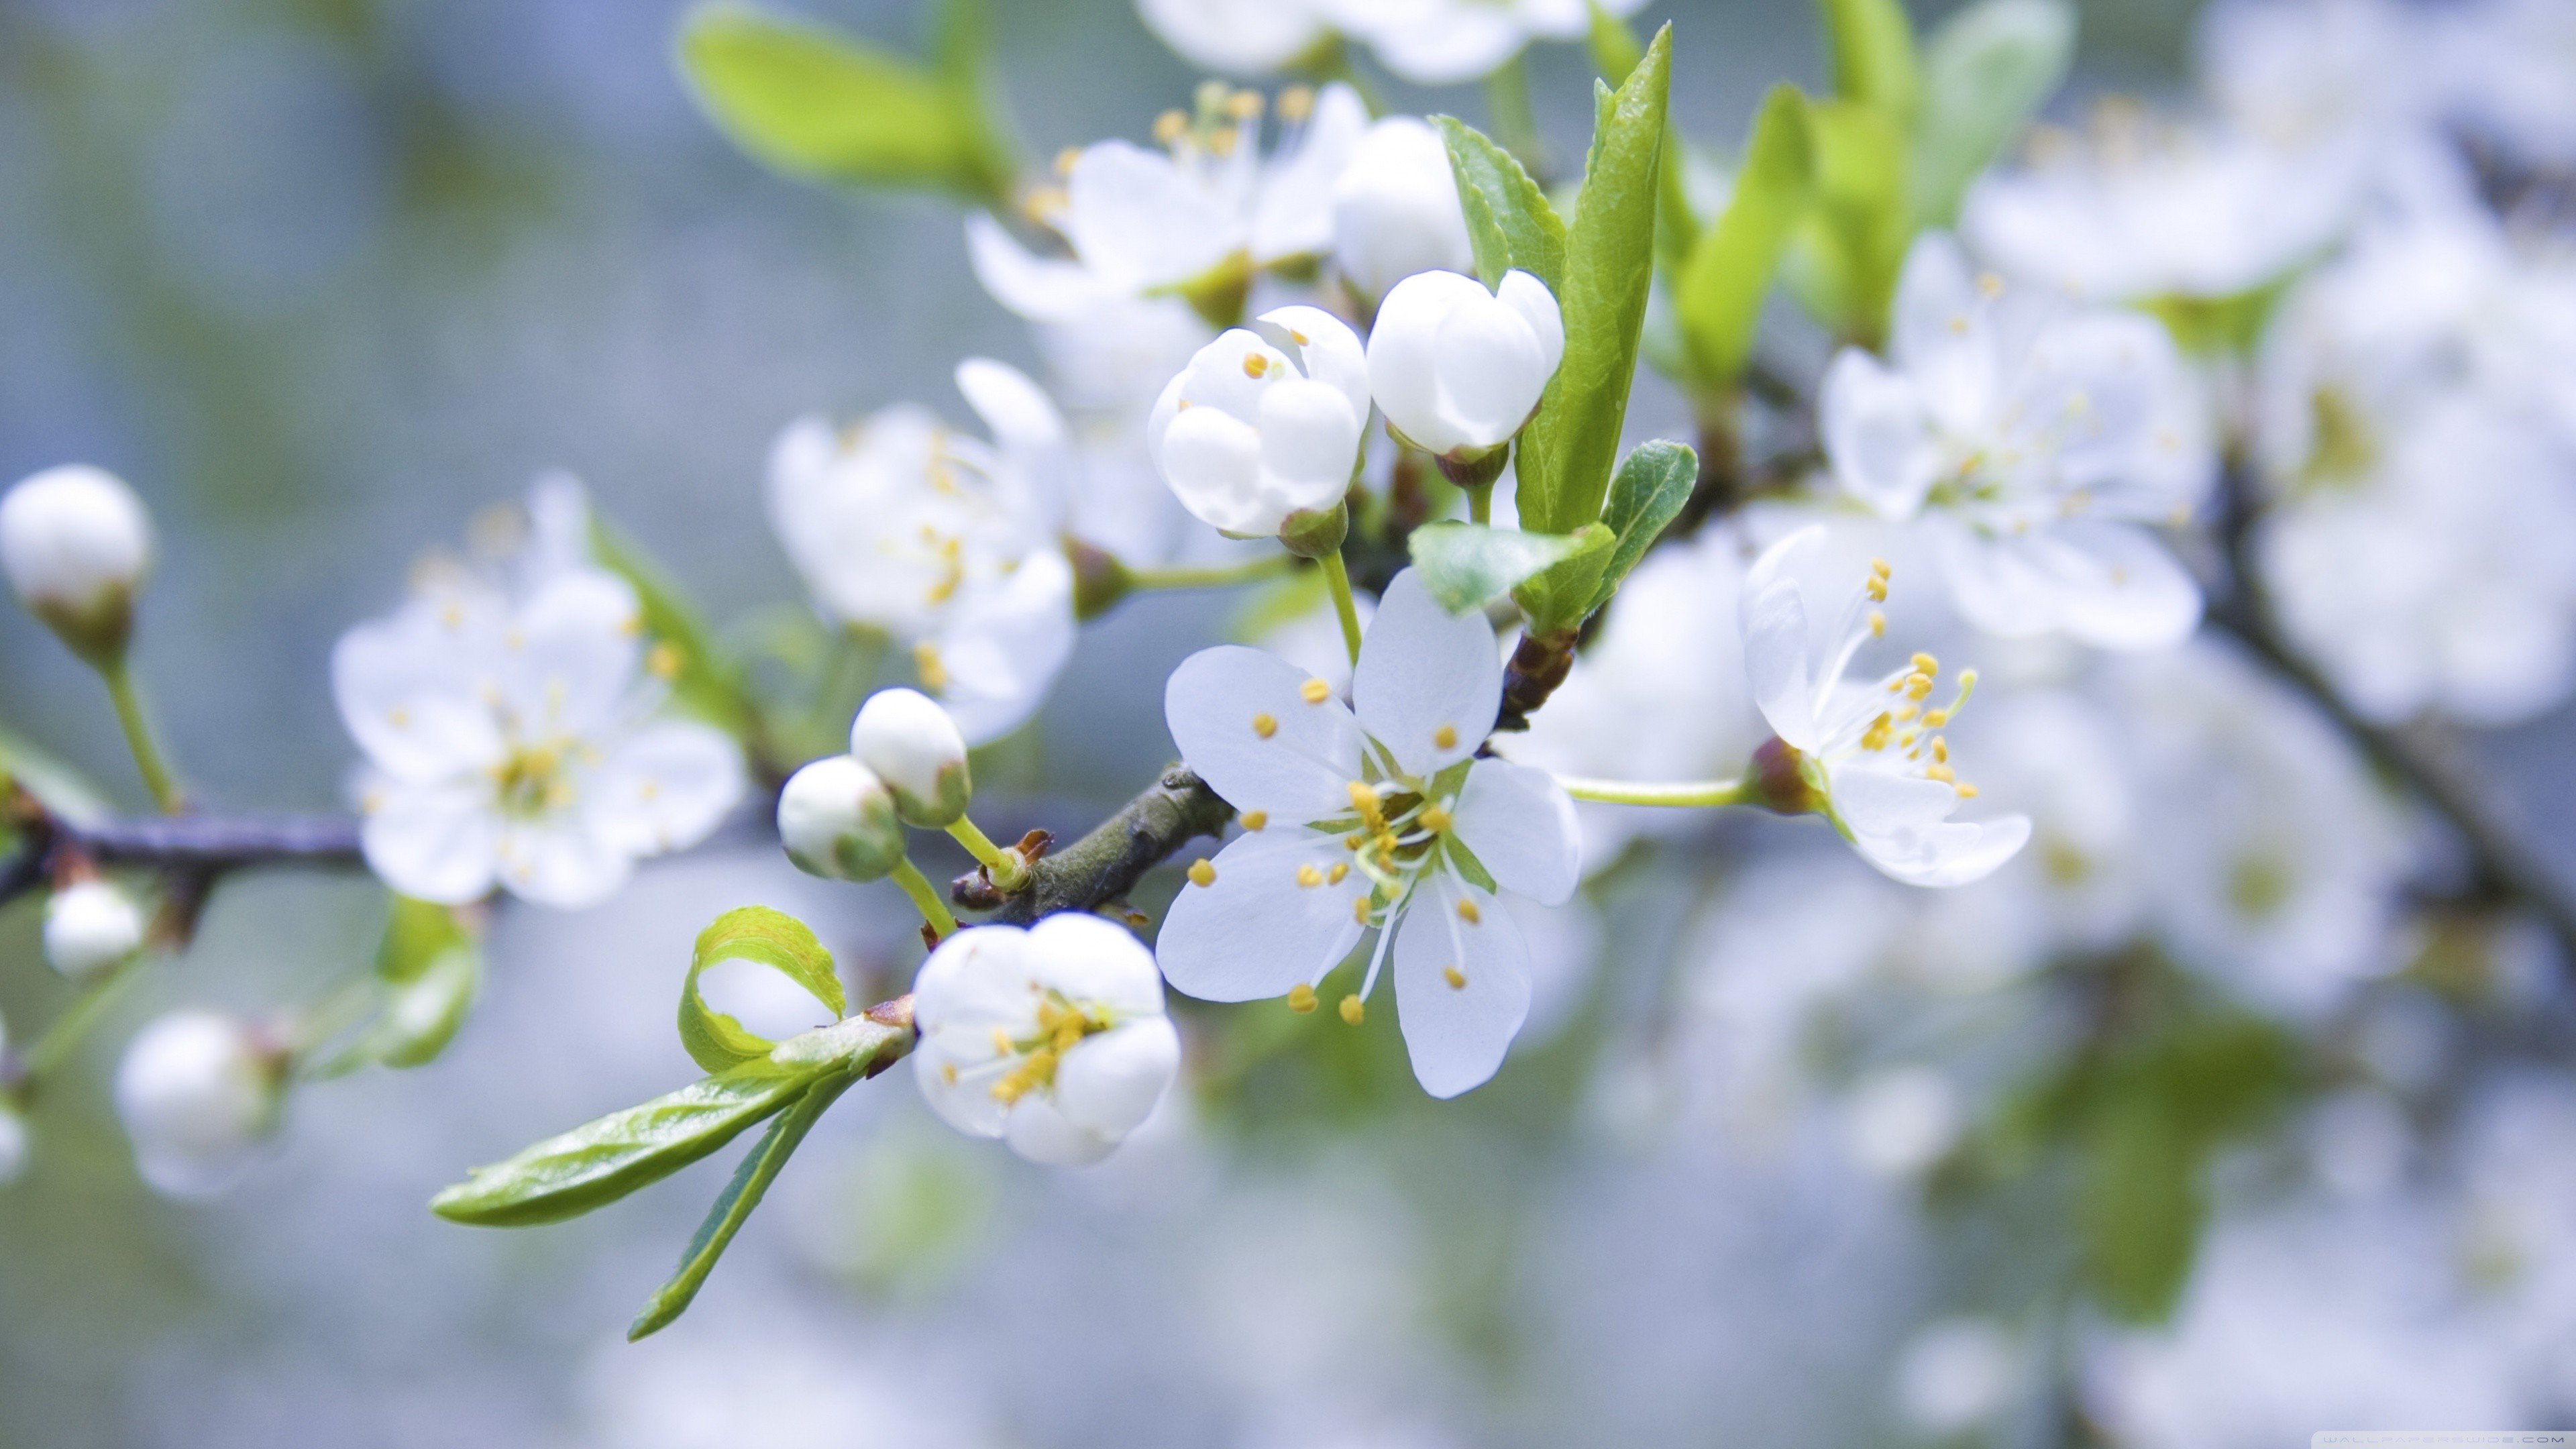 white flowers spring blossoms macro wallpaper background